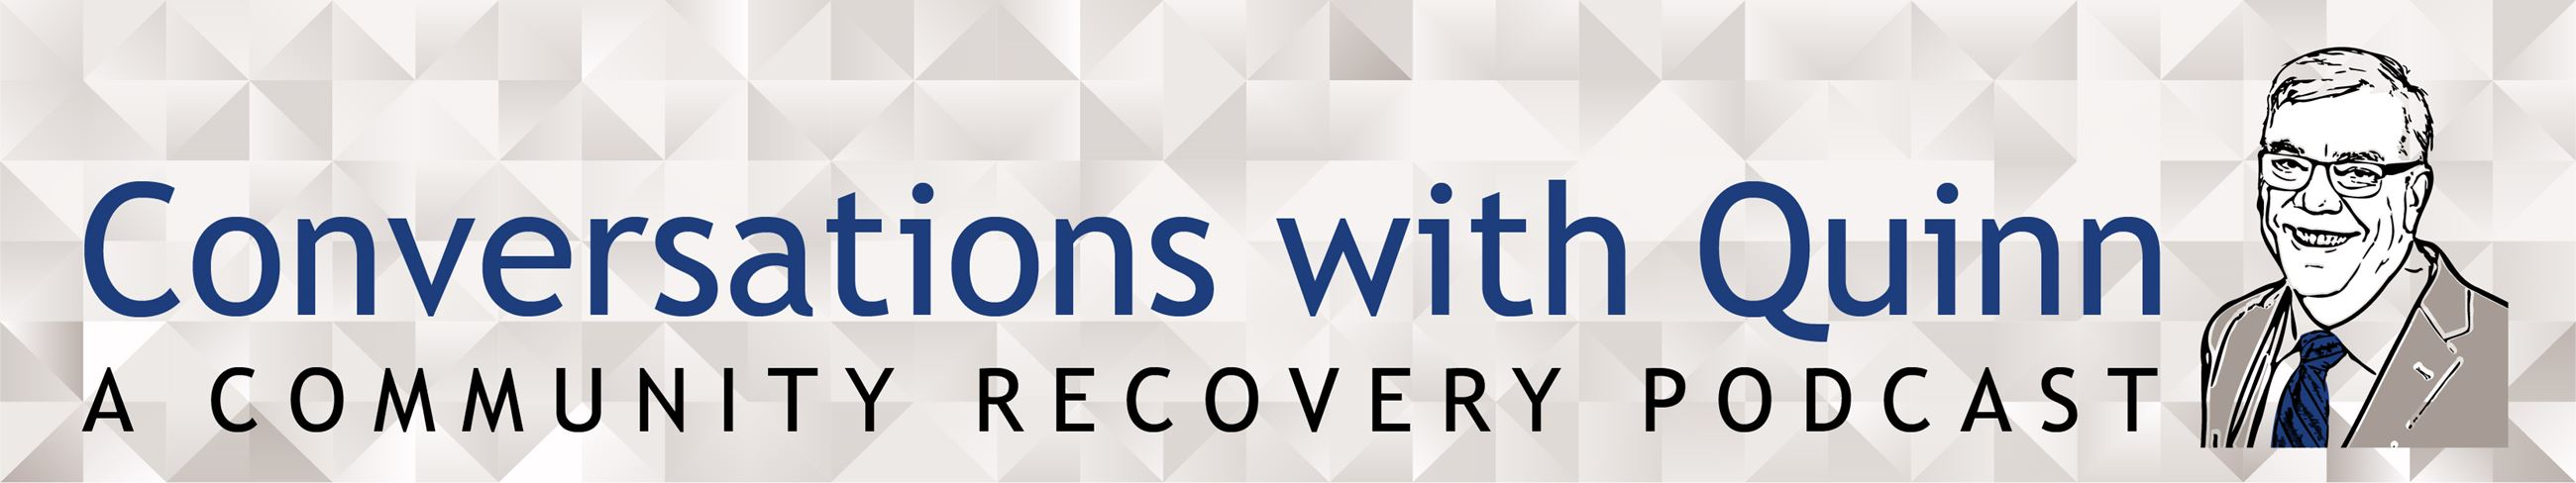 Conversations with Quinn - A Community Recovery Podcast